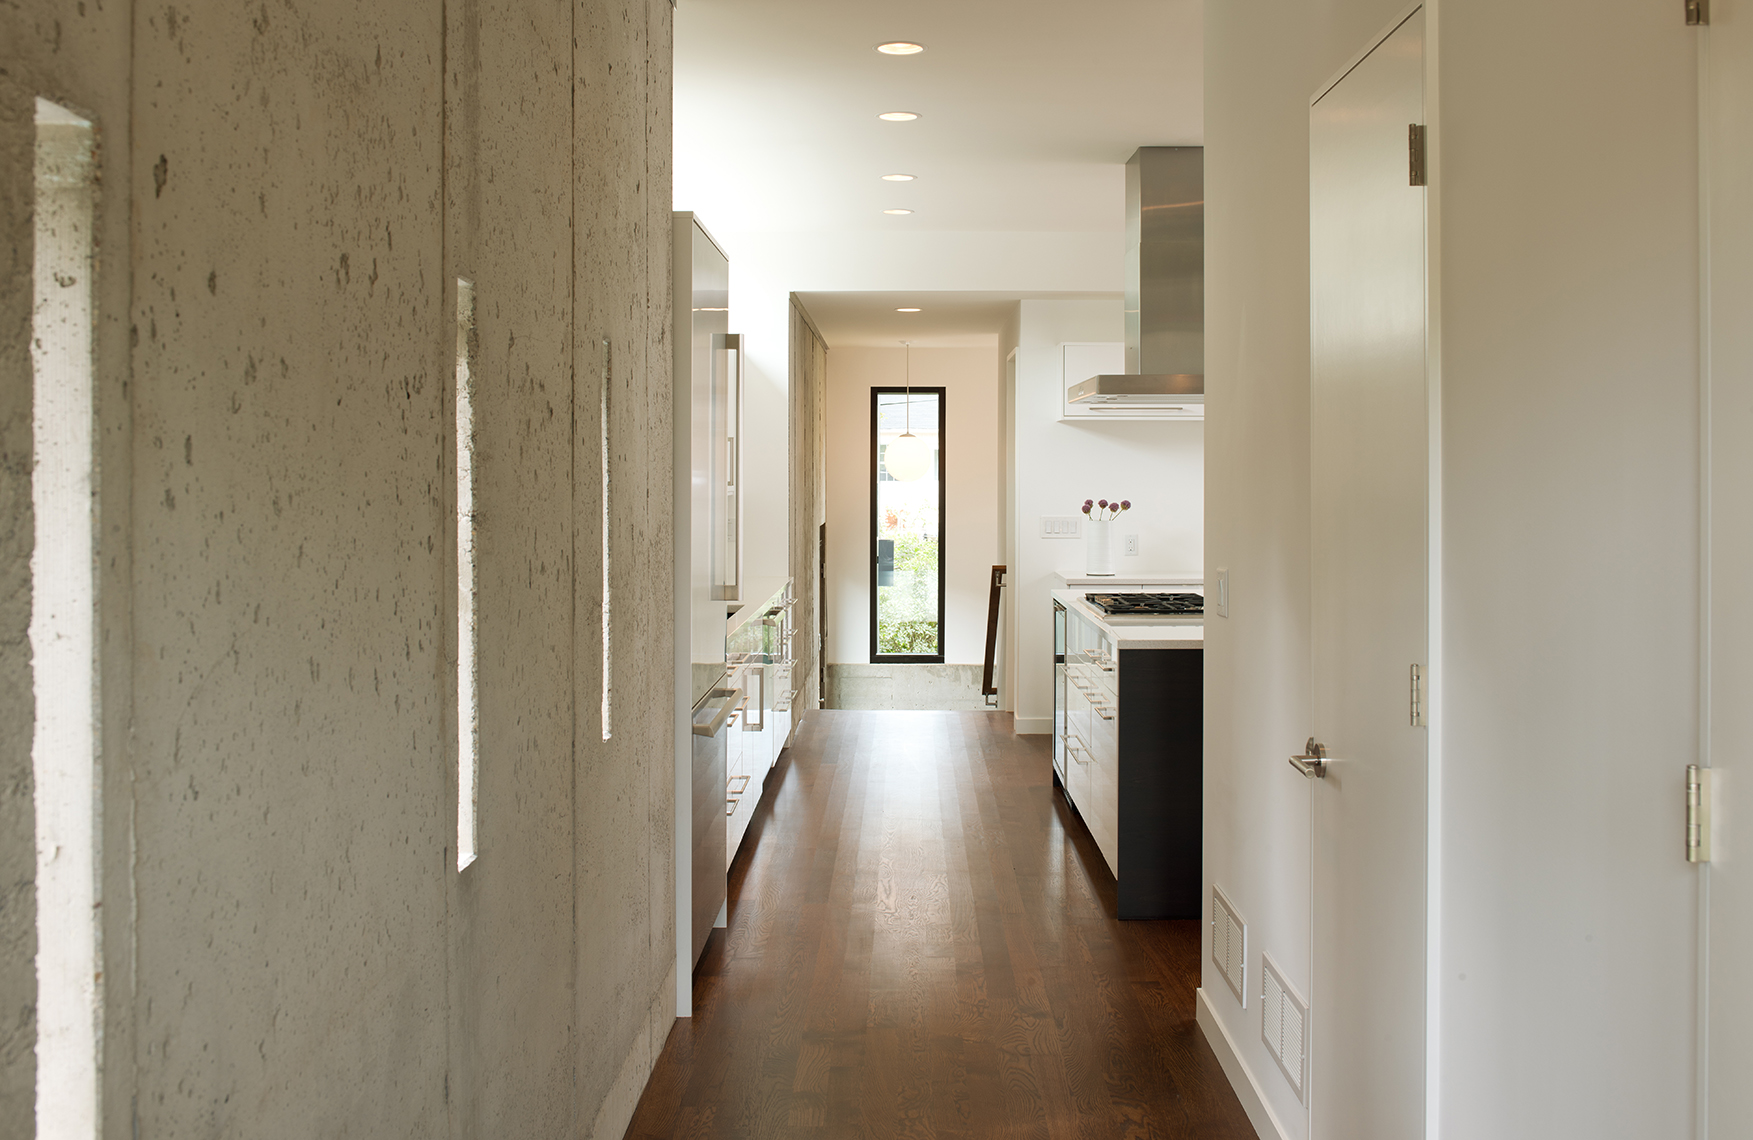 Hallway through kitchen on modern home remodel with exposed concrete wall